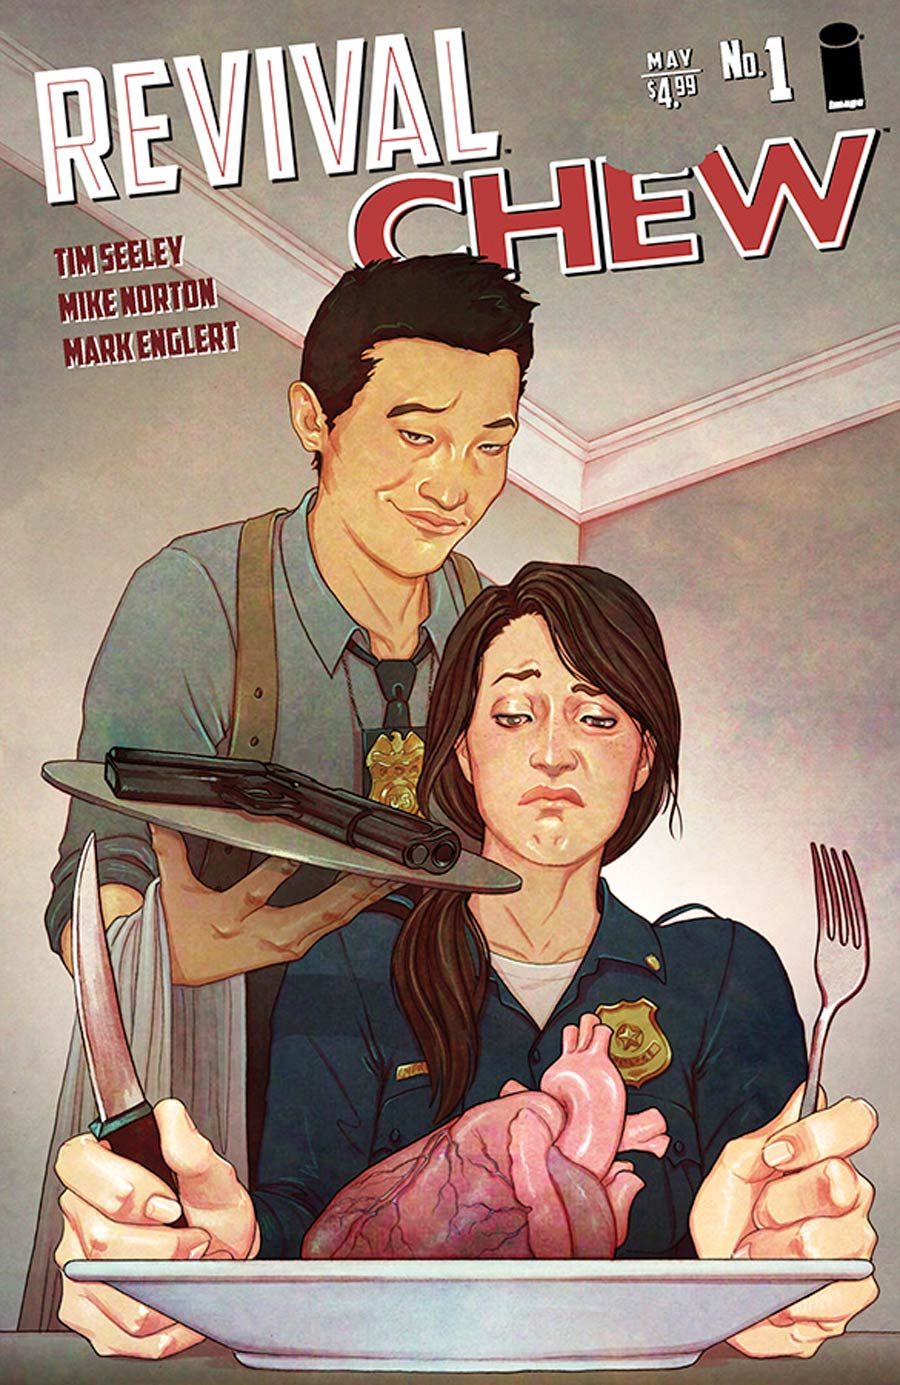 Chew / Revival #1 Cover A Regular Rob Guillory & Jenny Frison Cover